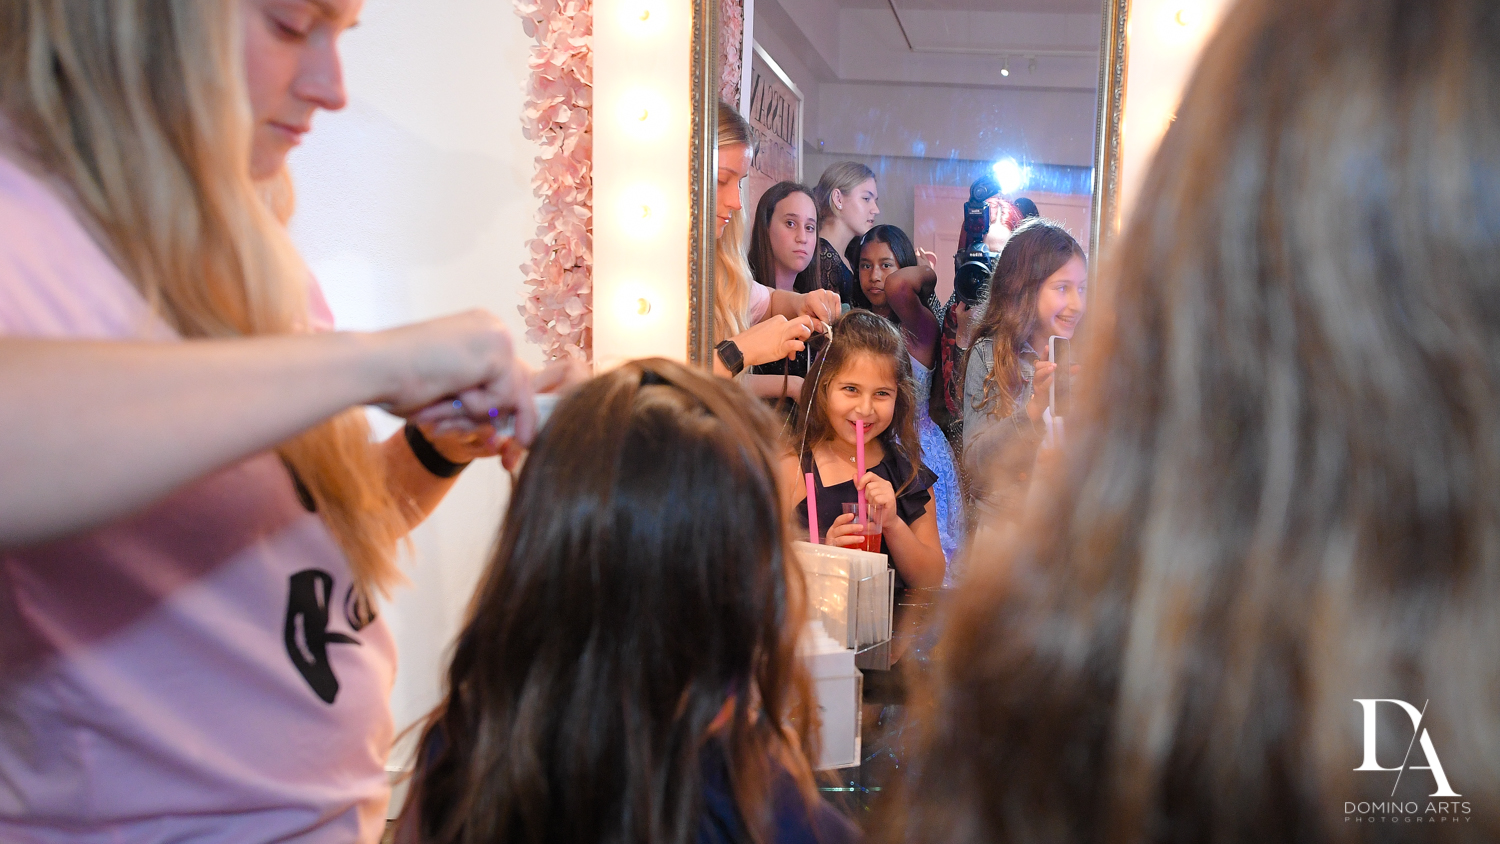 fun at Fashion Theme Bat Mitzvah at Gallery of Amazing Things by Domino Arts Photography